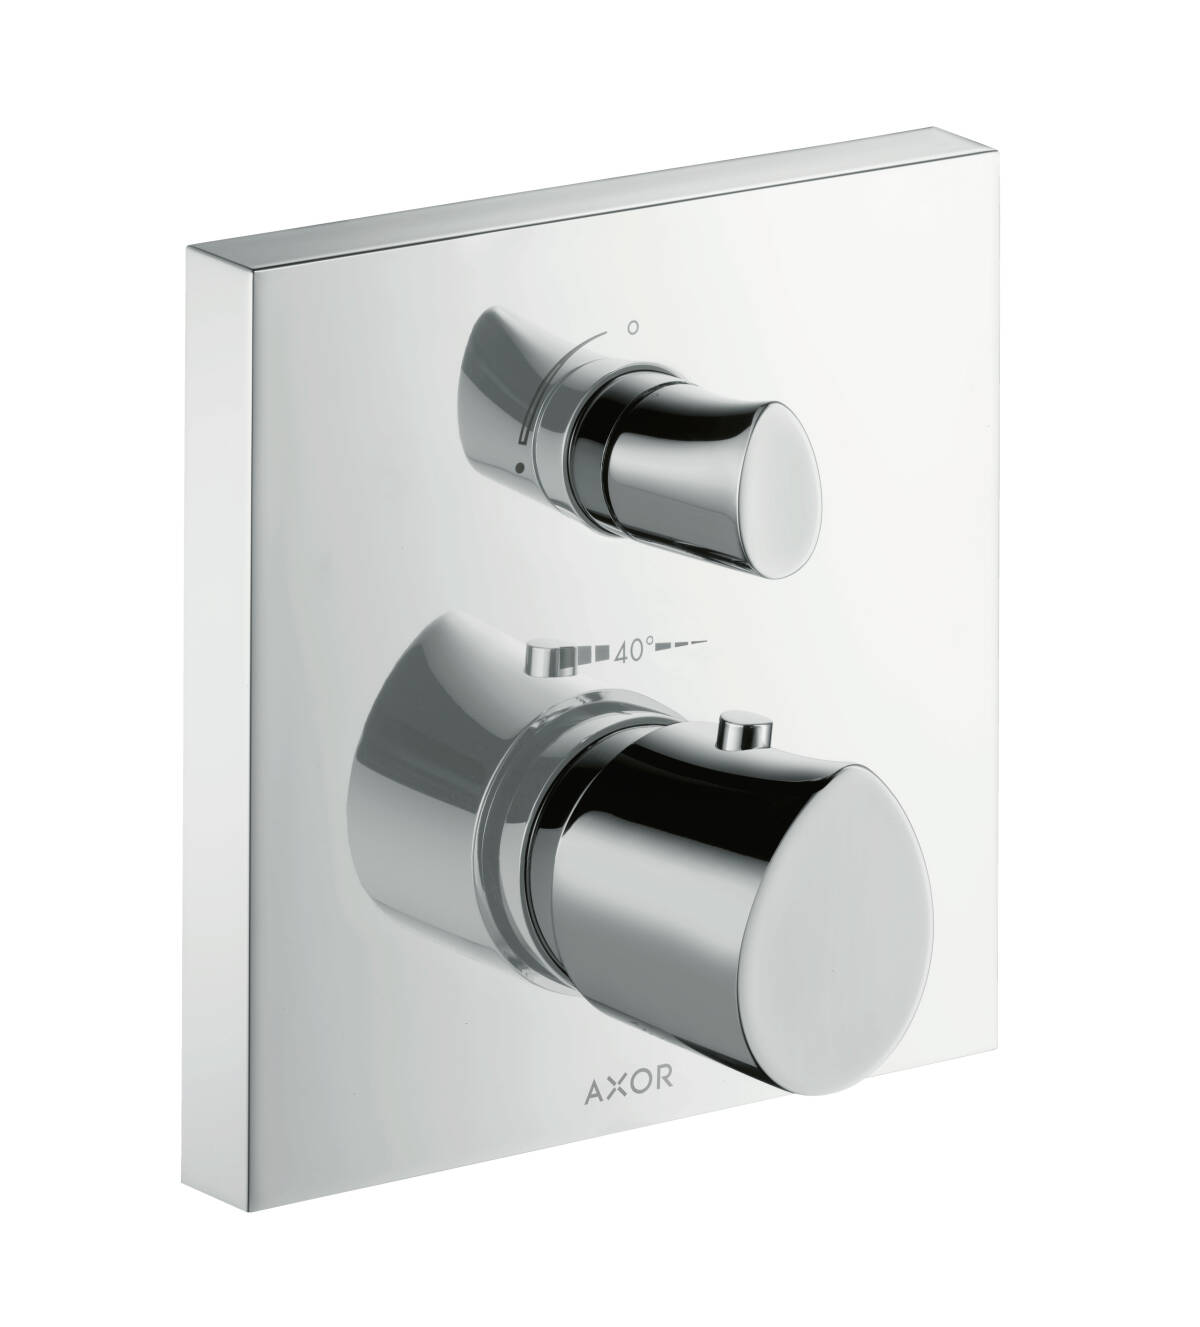 Thermostatic mixer for concealed installation with shut-off/ diverter valve, Brushed Gold Optic, 12716250